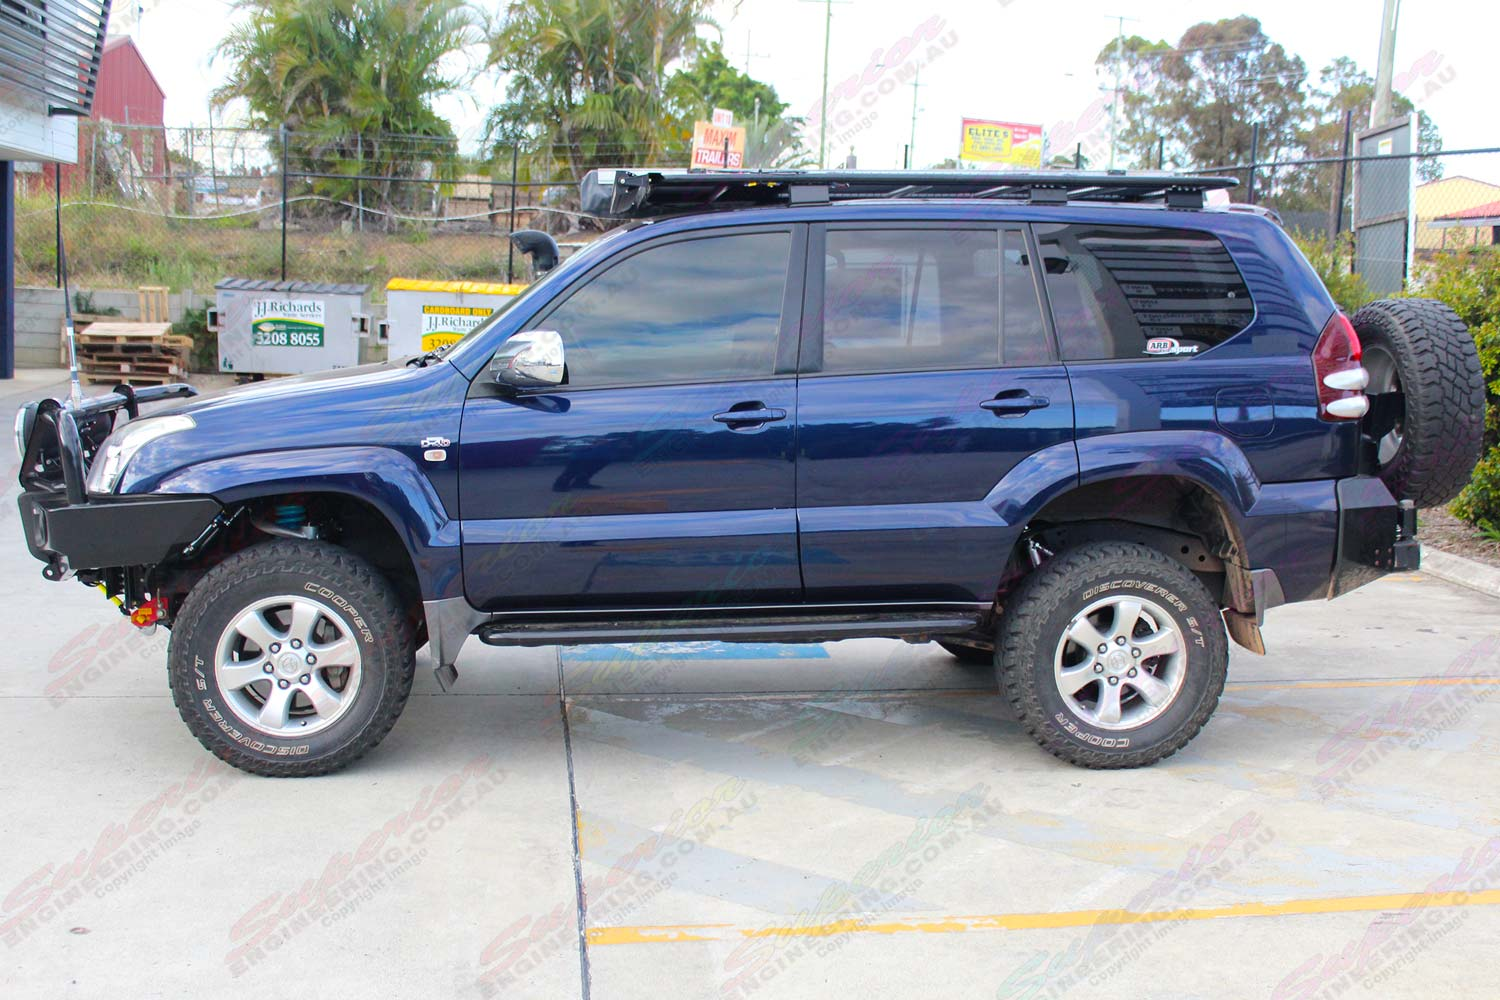 Left side view of the Blue Toyota Prado 120 Wagon after being fitted with a range of Superior, Dobinsons and Profender suspension parts